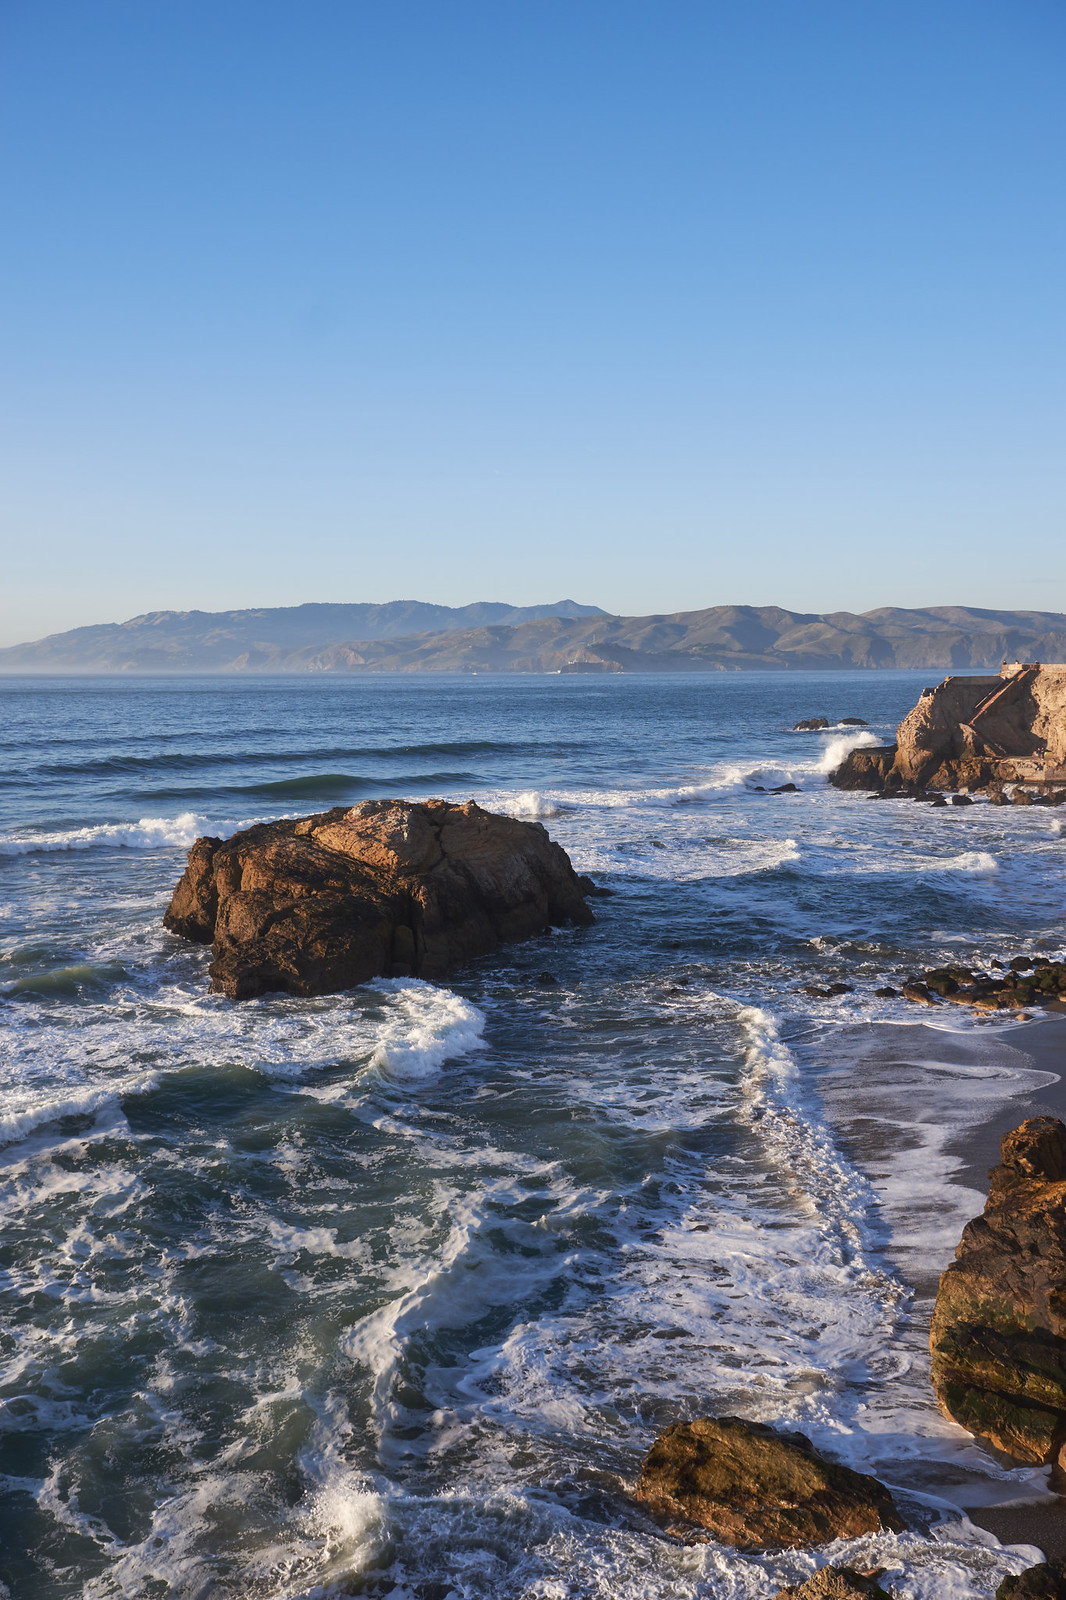 The rough coast at Land's end in San Francisco.